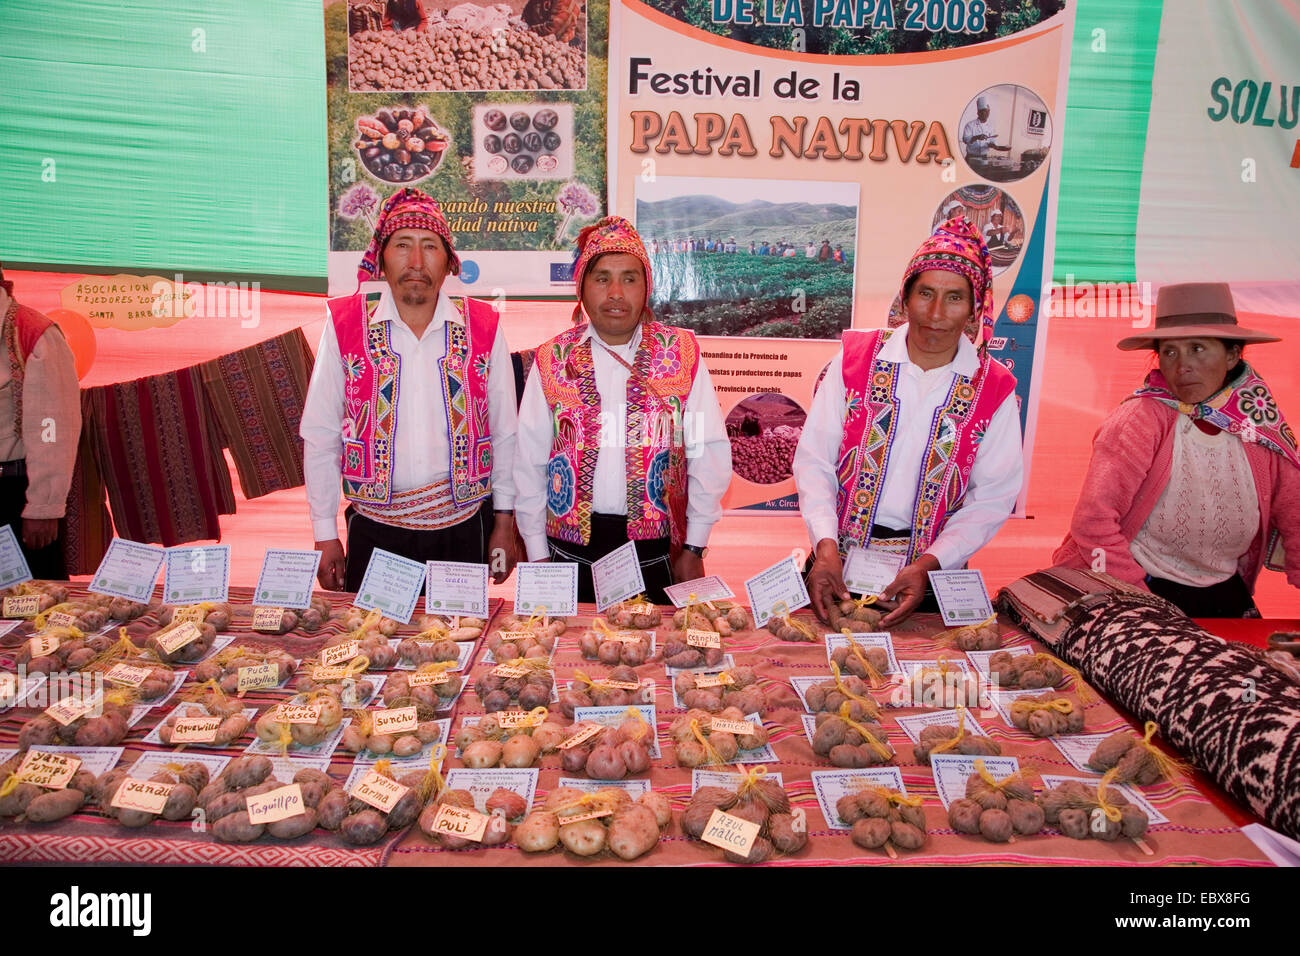 ceremoniously dressed greengrocers selling native potatoes at a traditional festival, Peru, Cuzco - Stock Image